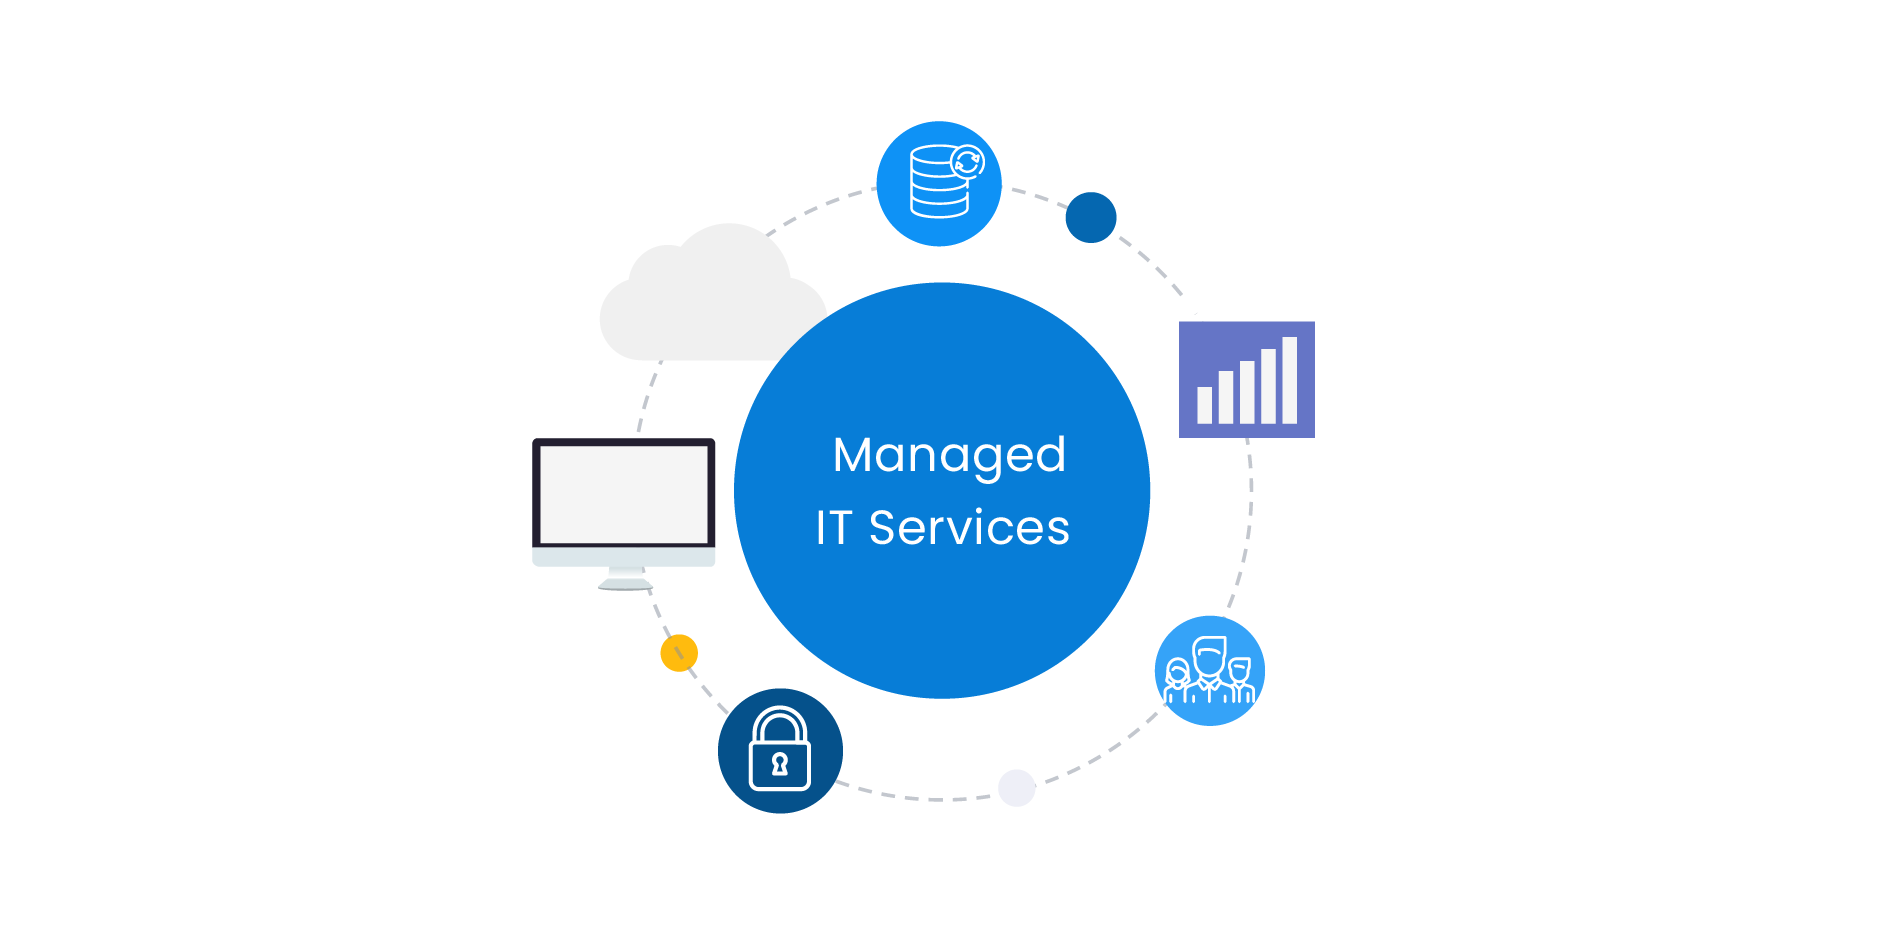 5 Key Benefits of Managed IT Services & Advantages of IT Outsourcing